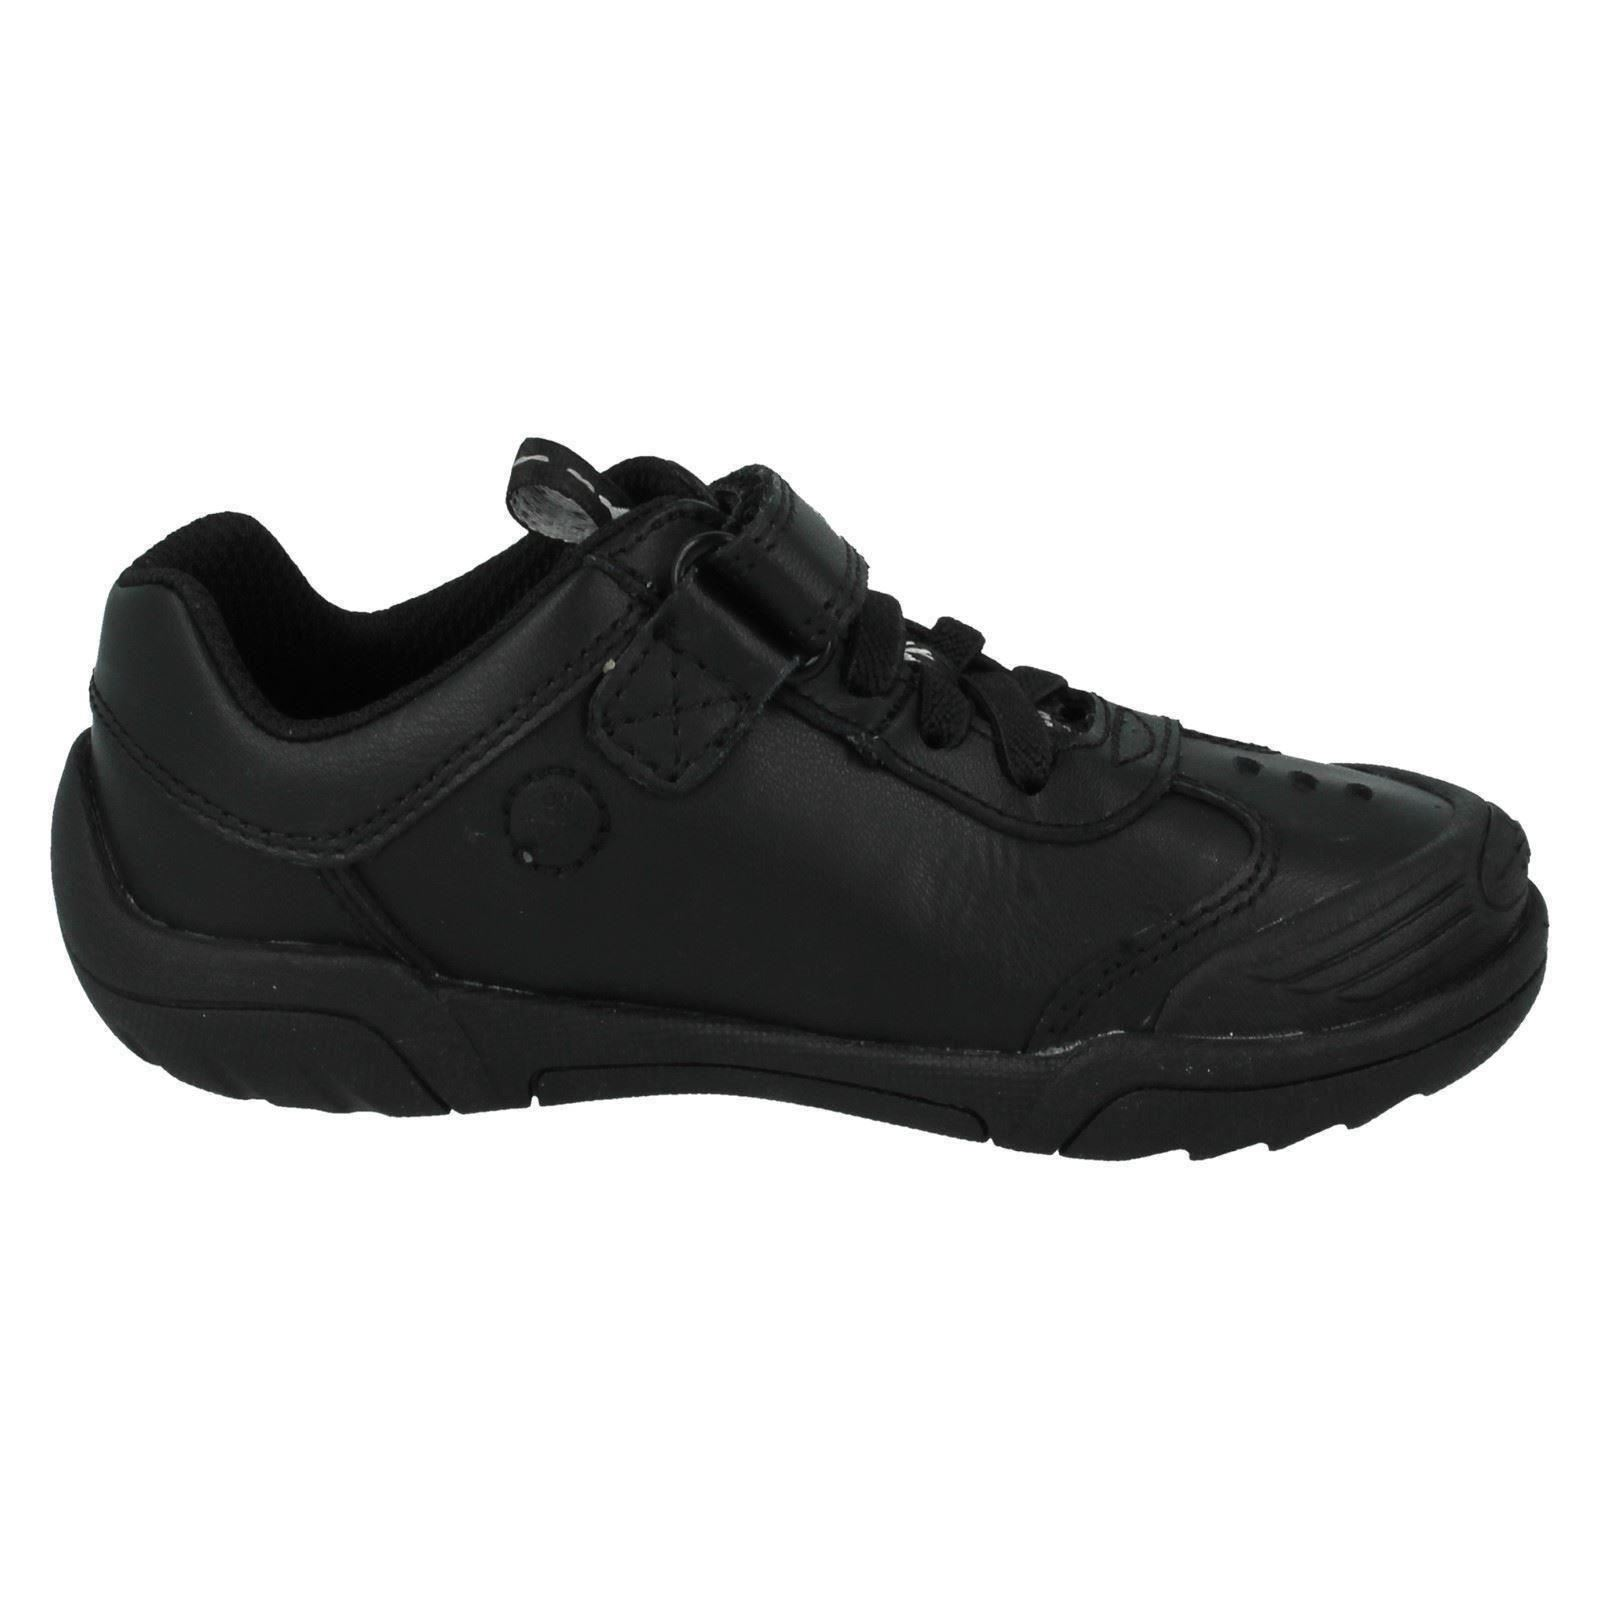 Boys Clarks Active Air Shoes